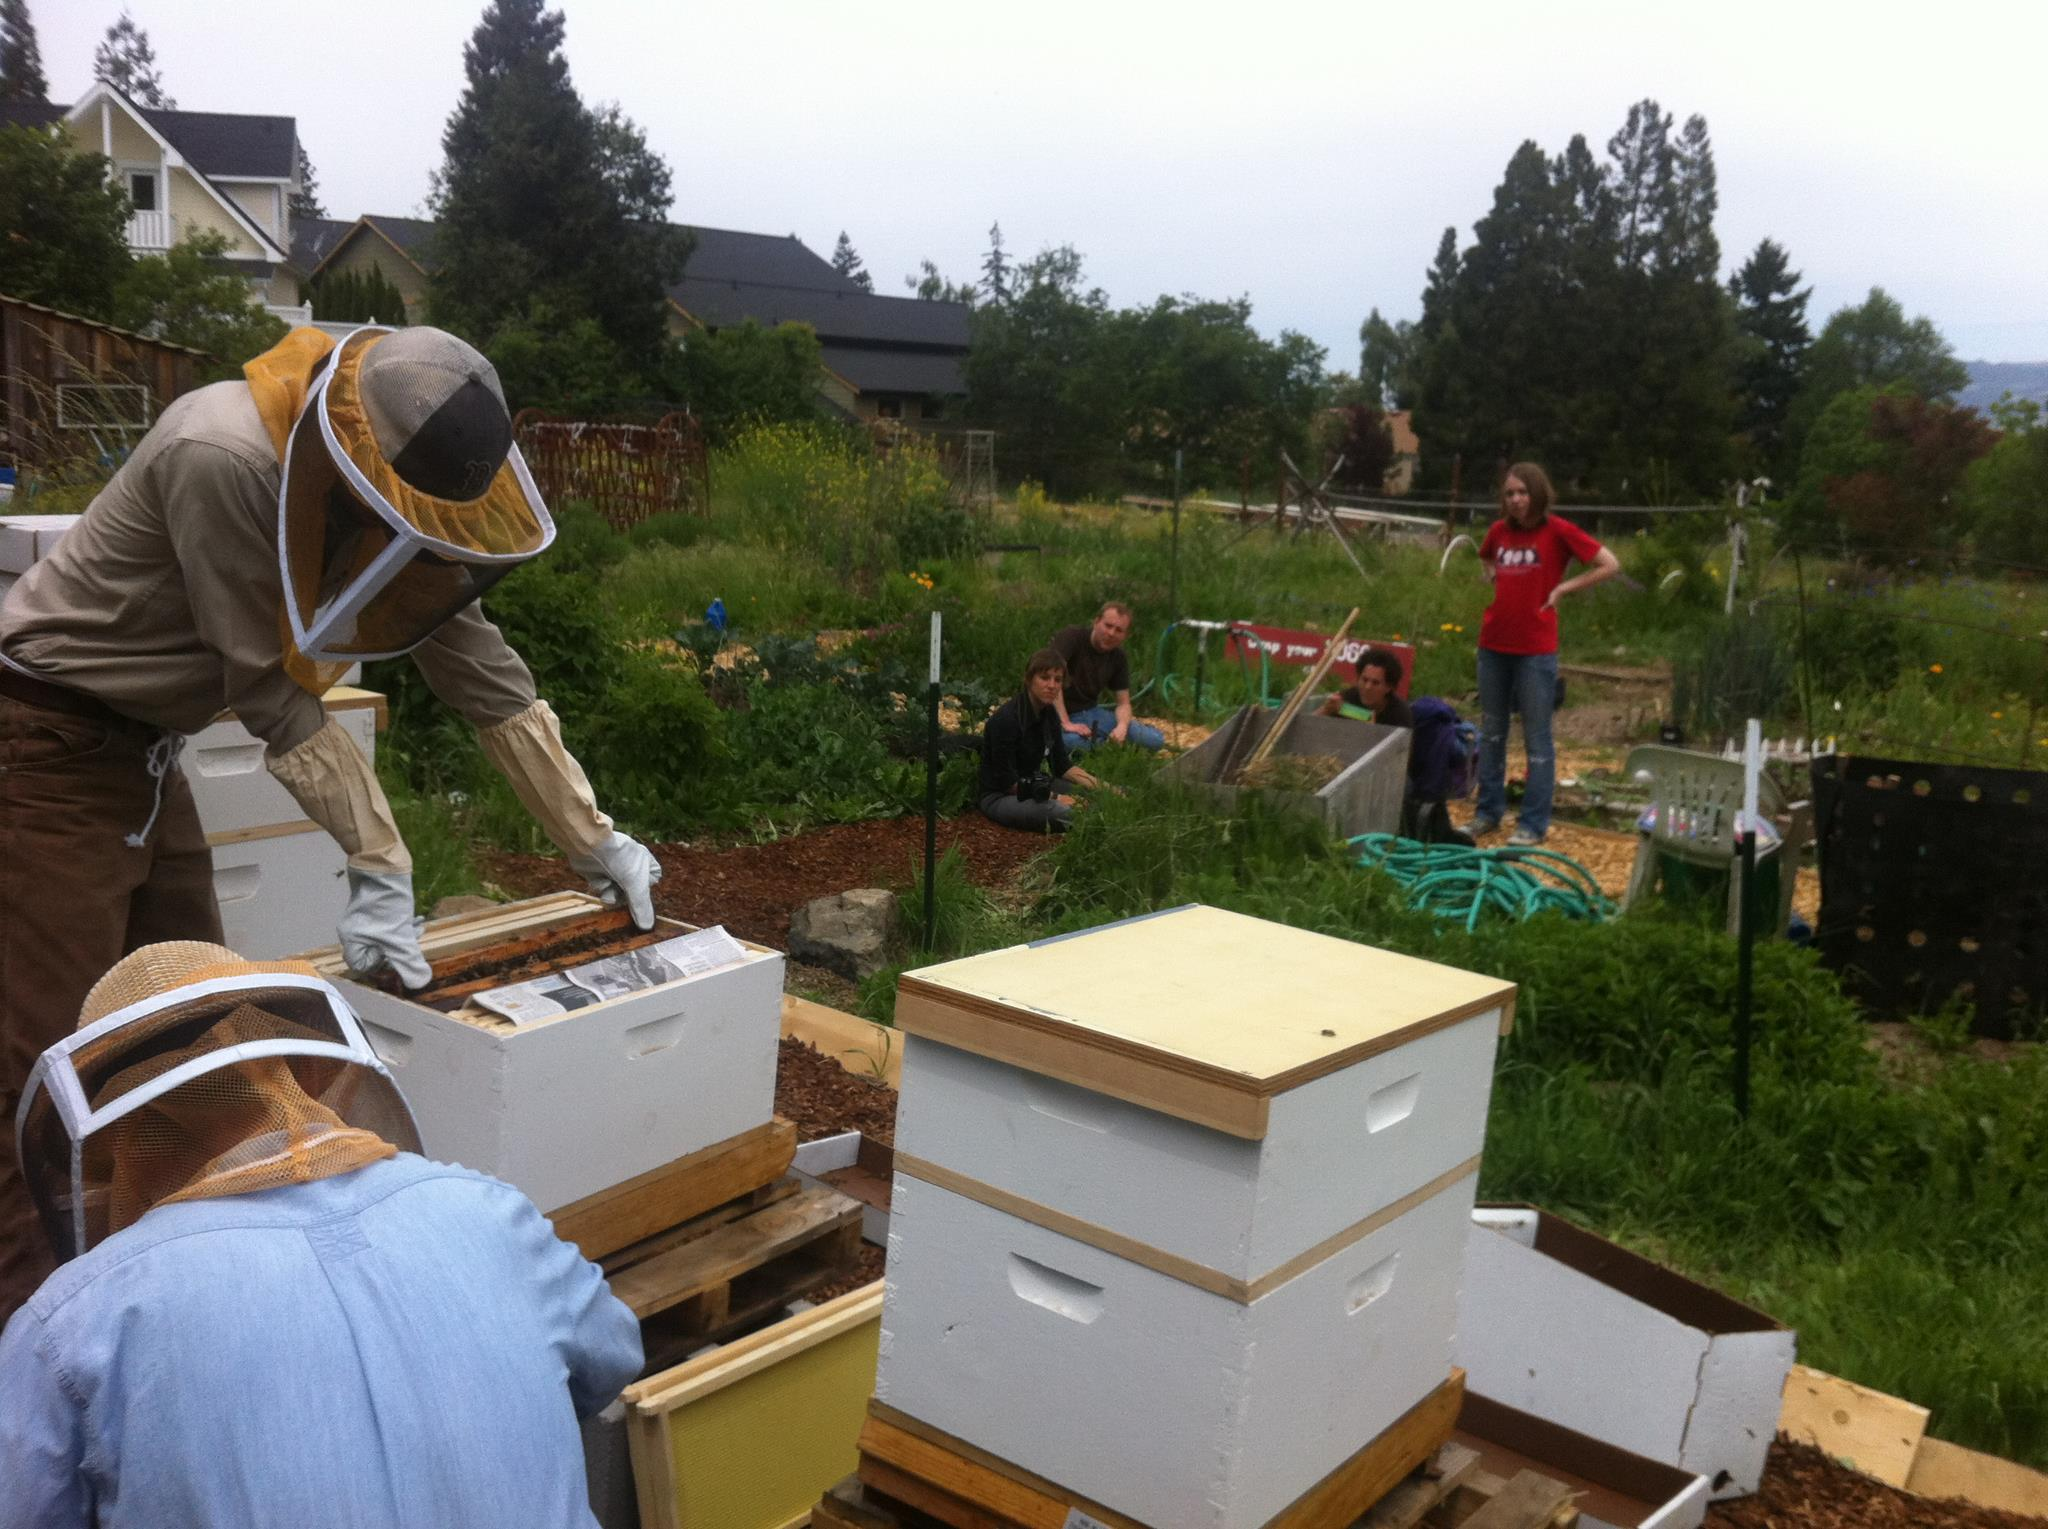 Honeybee Heroes: Ryan King at Southern Oregon University